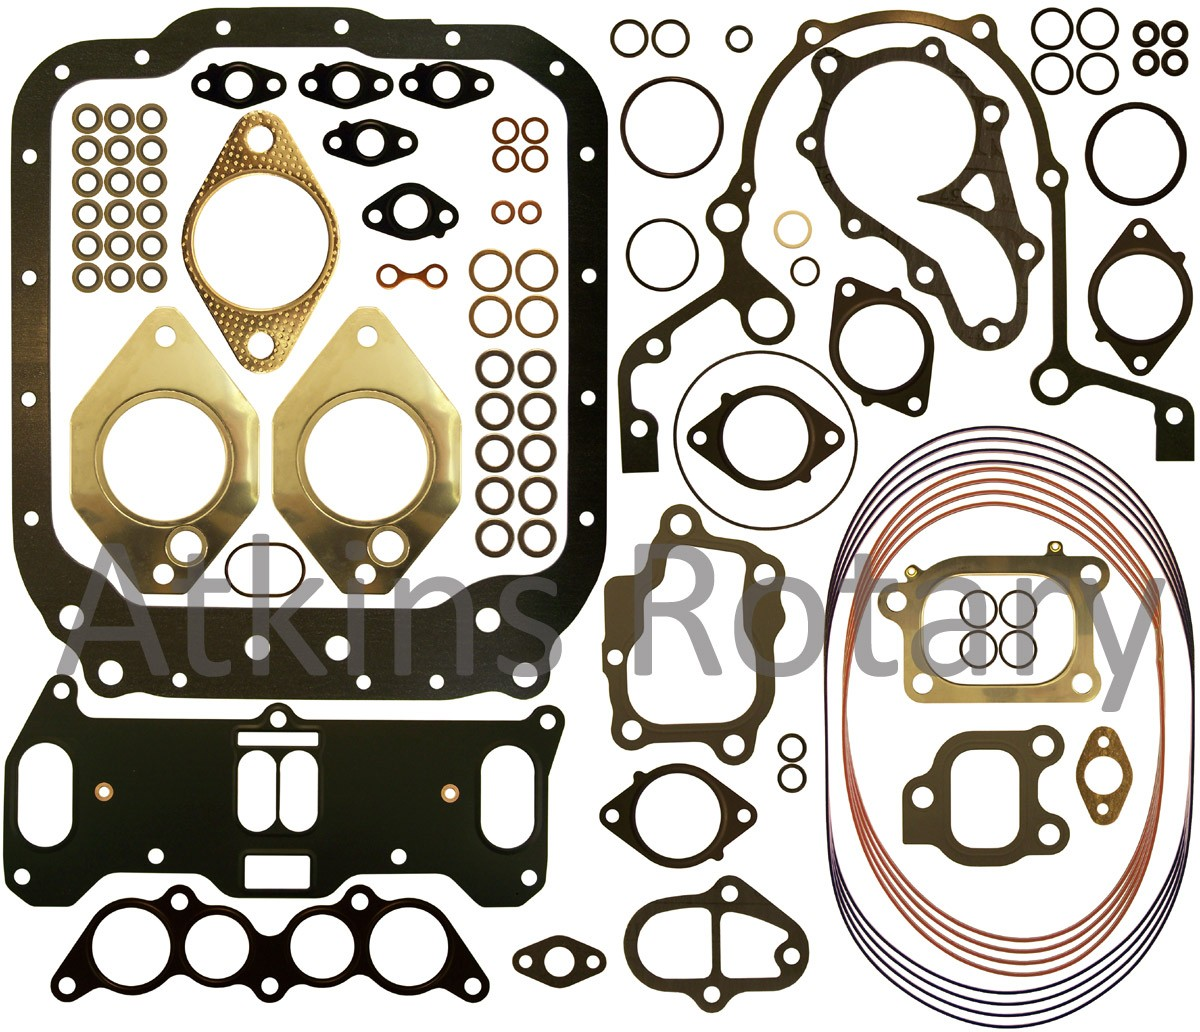 93-95 Rx7 Engine Gasket Kit (8DFE-10-271)